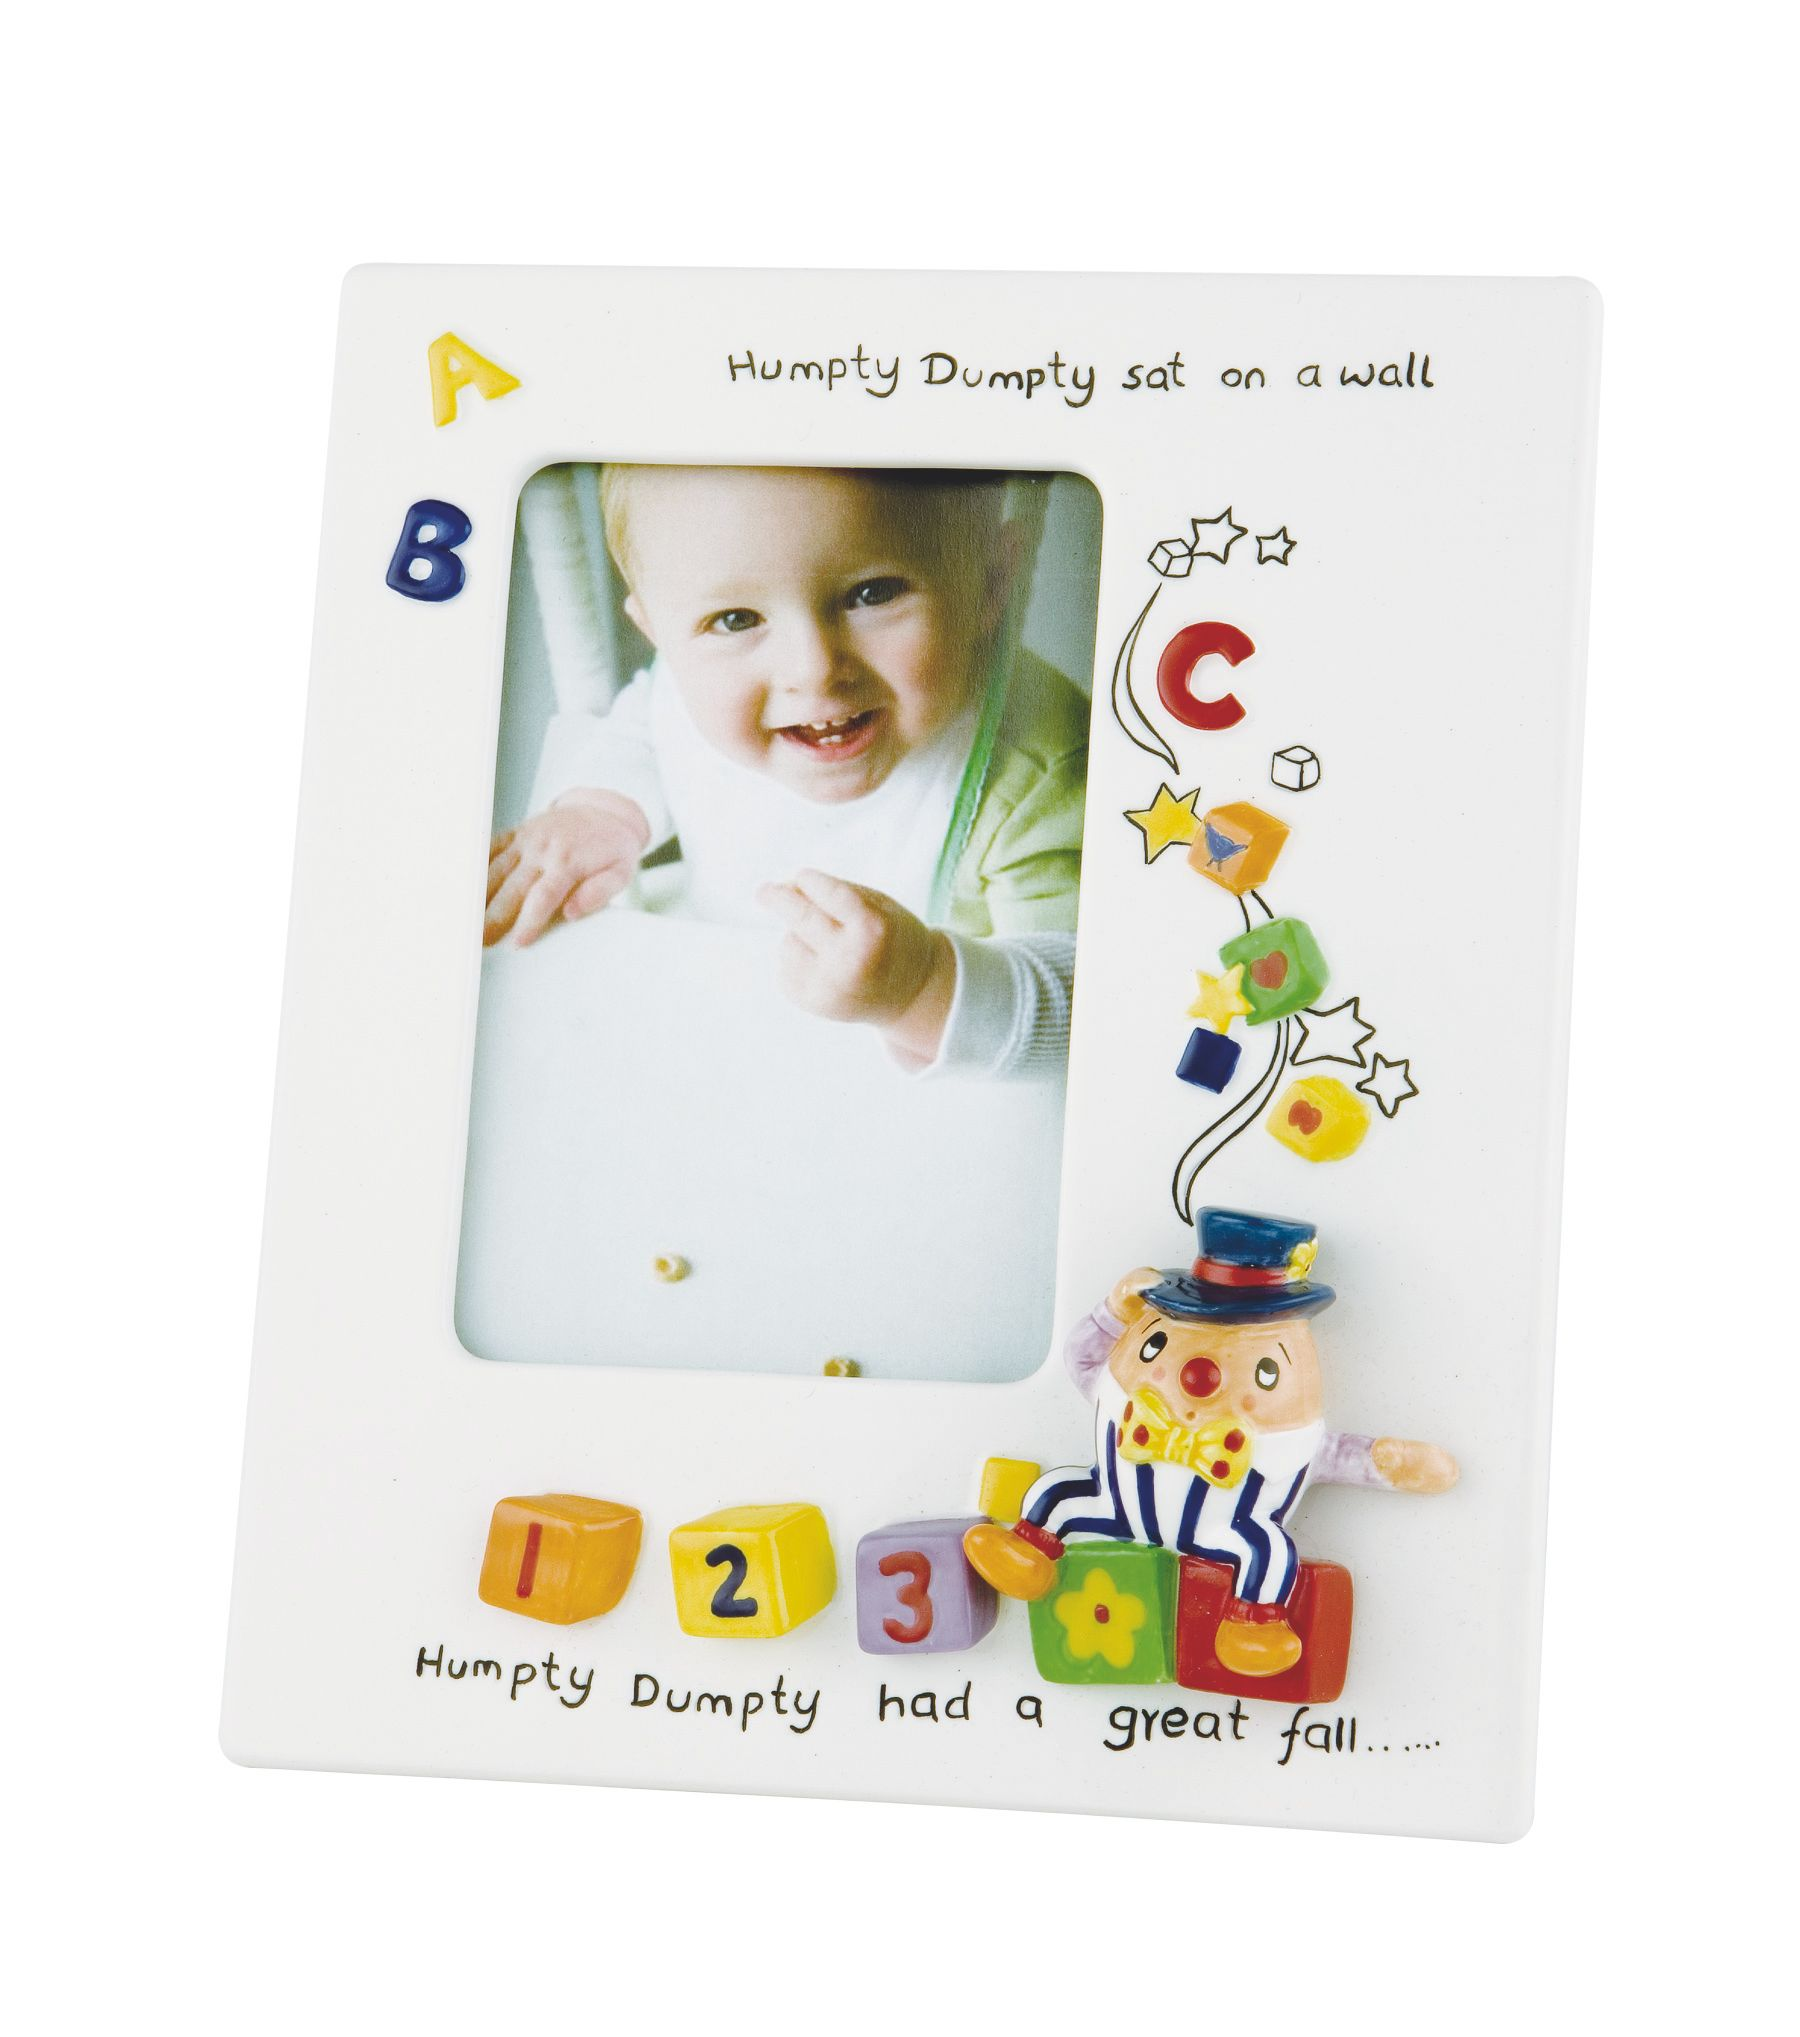 Humpty Dumpty photoframe